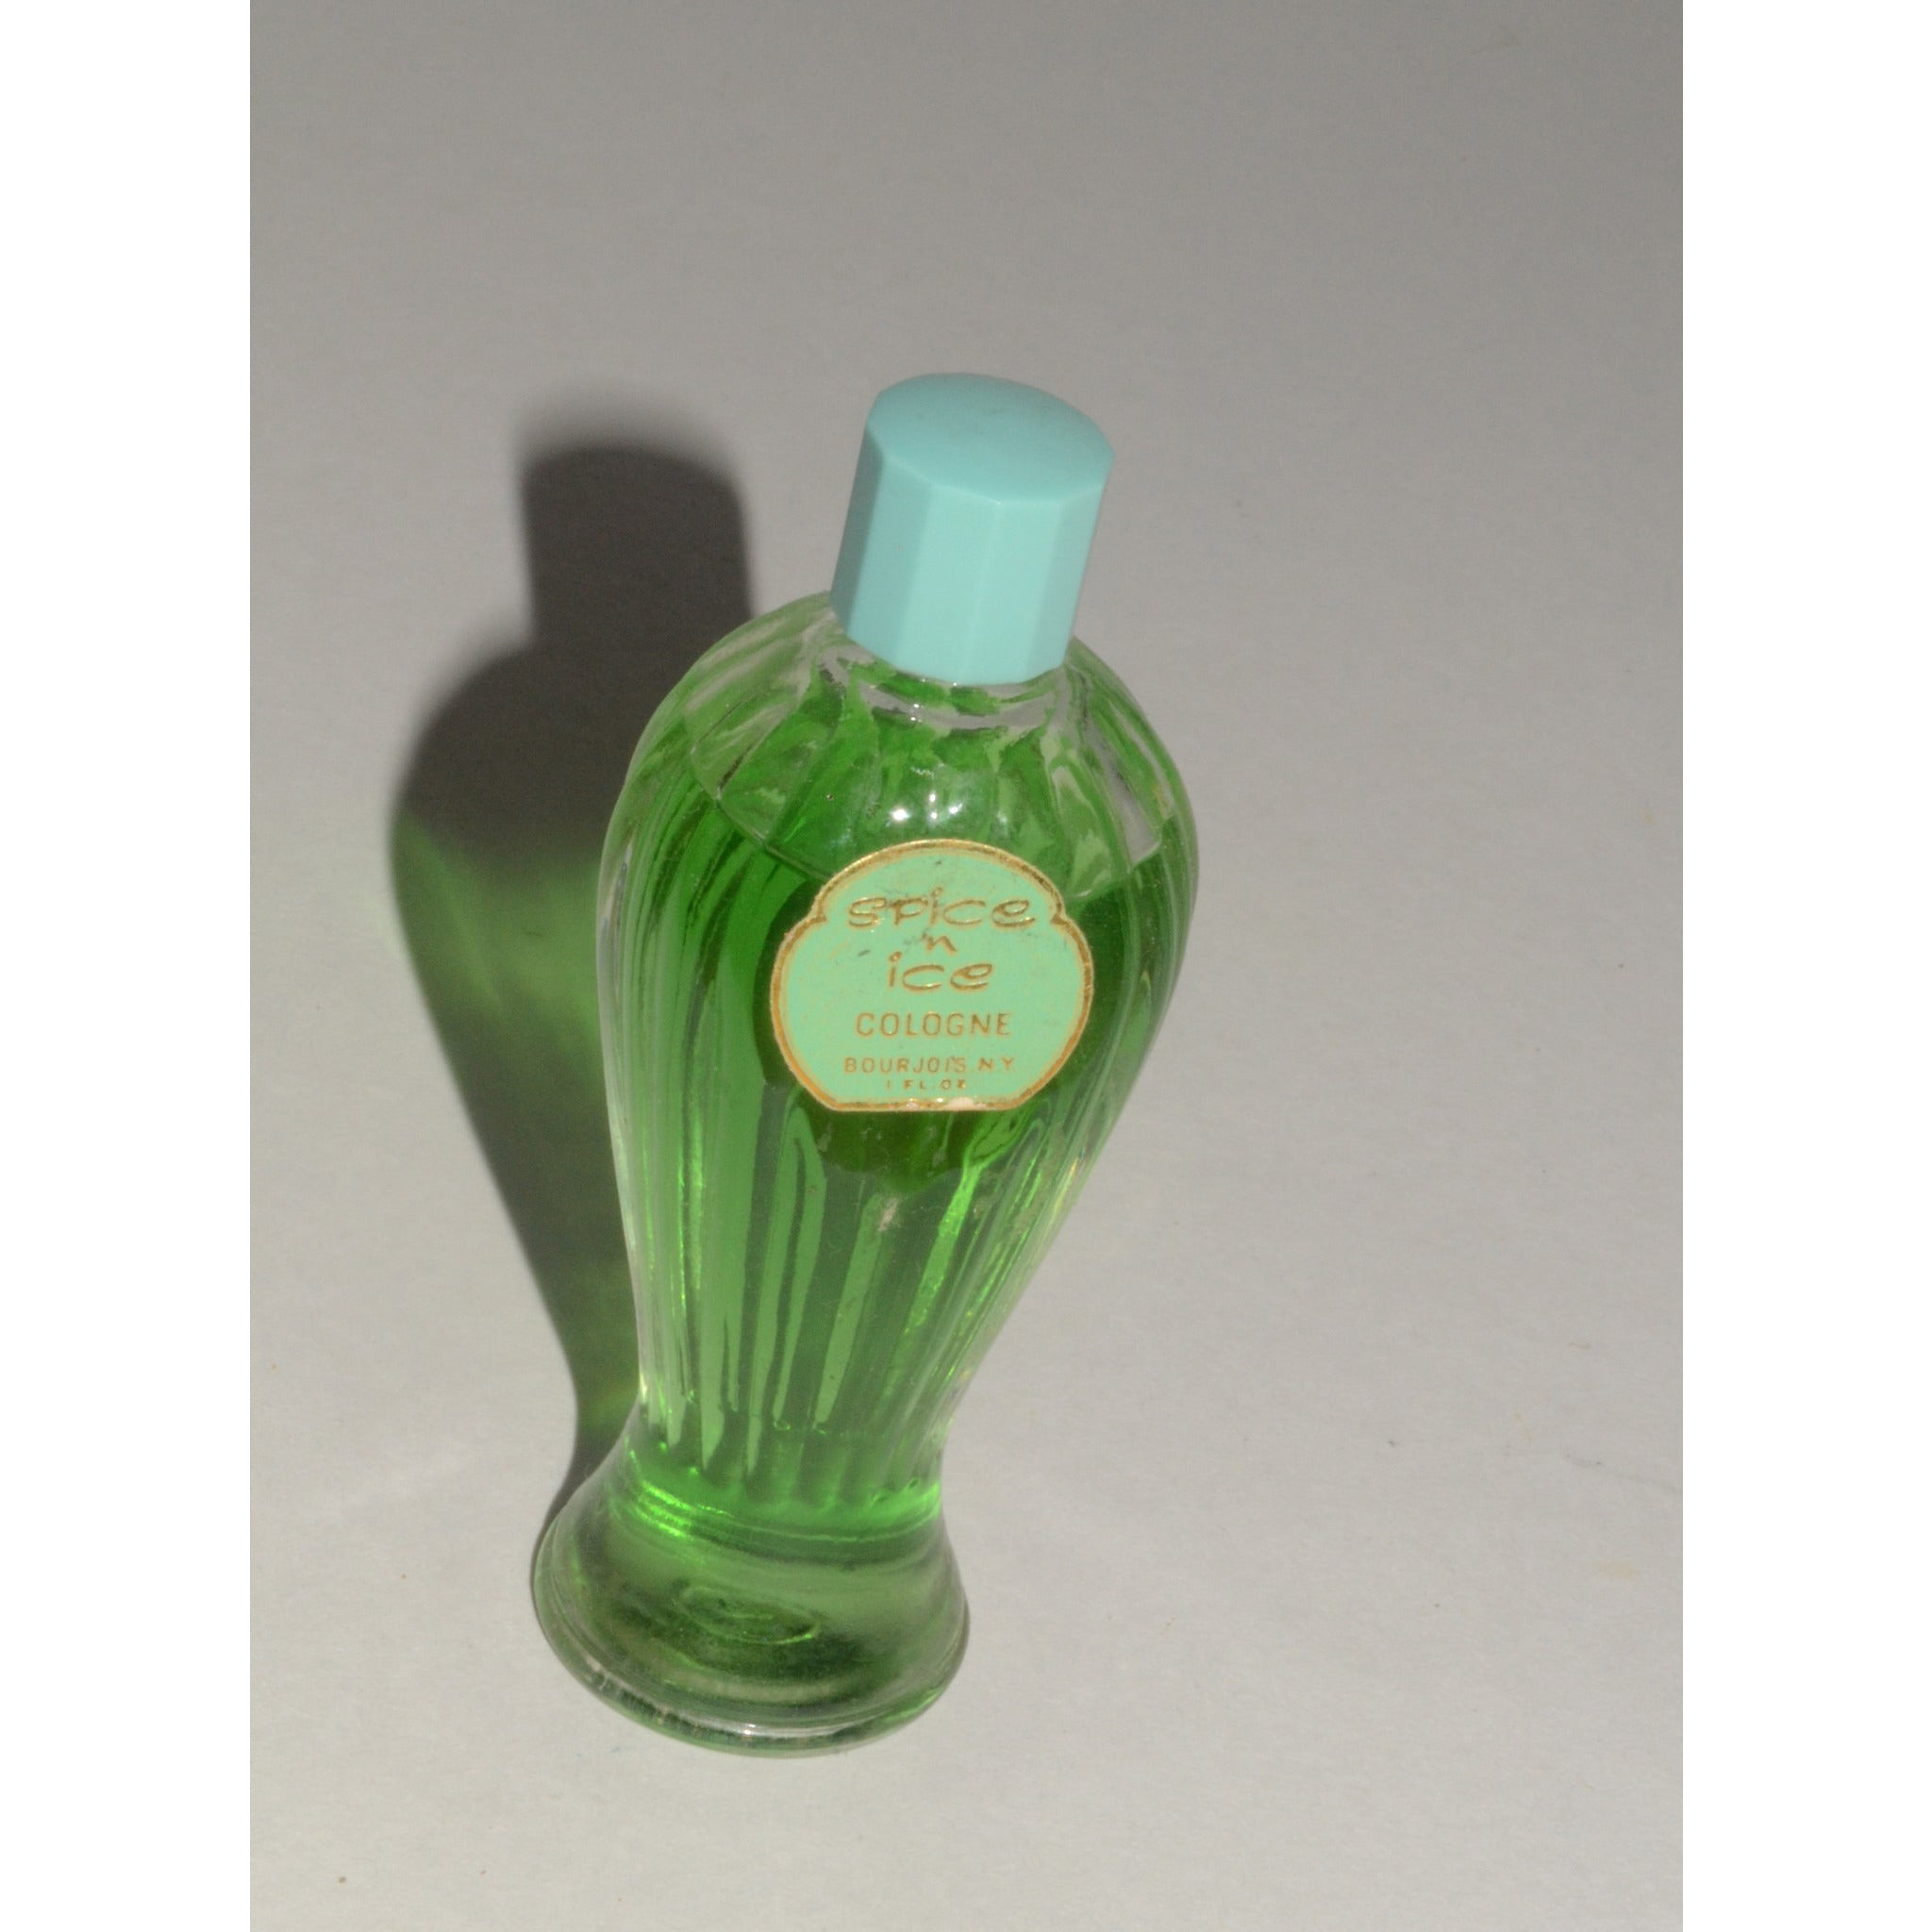 Vintage Spice n Ice Cologne By Bourjois